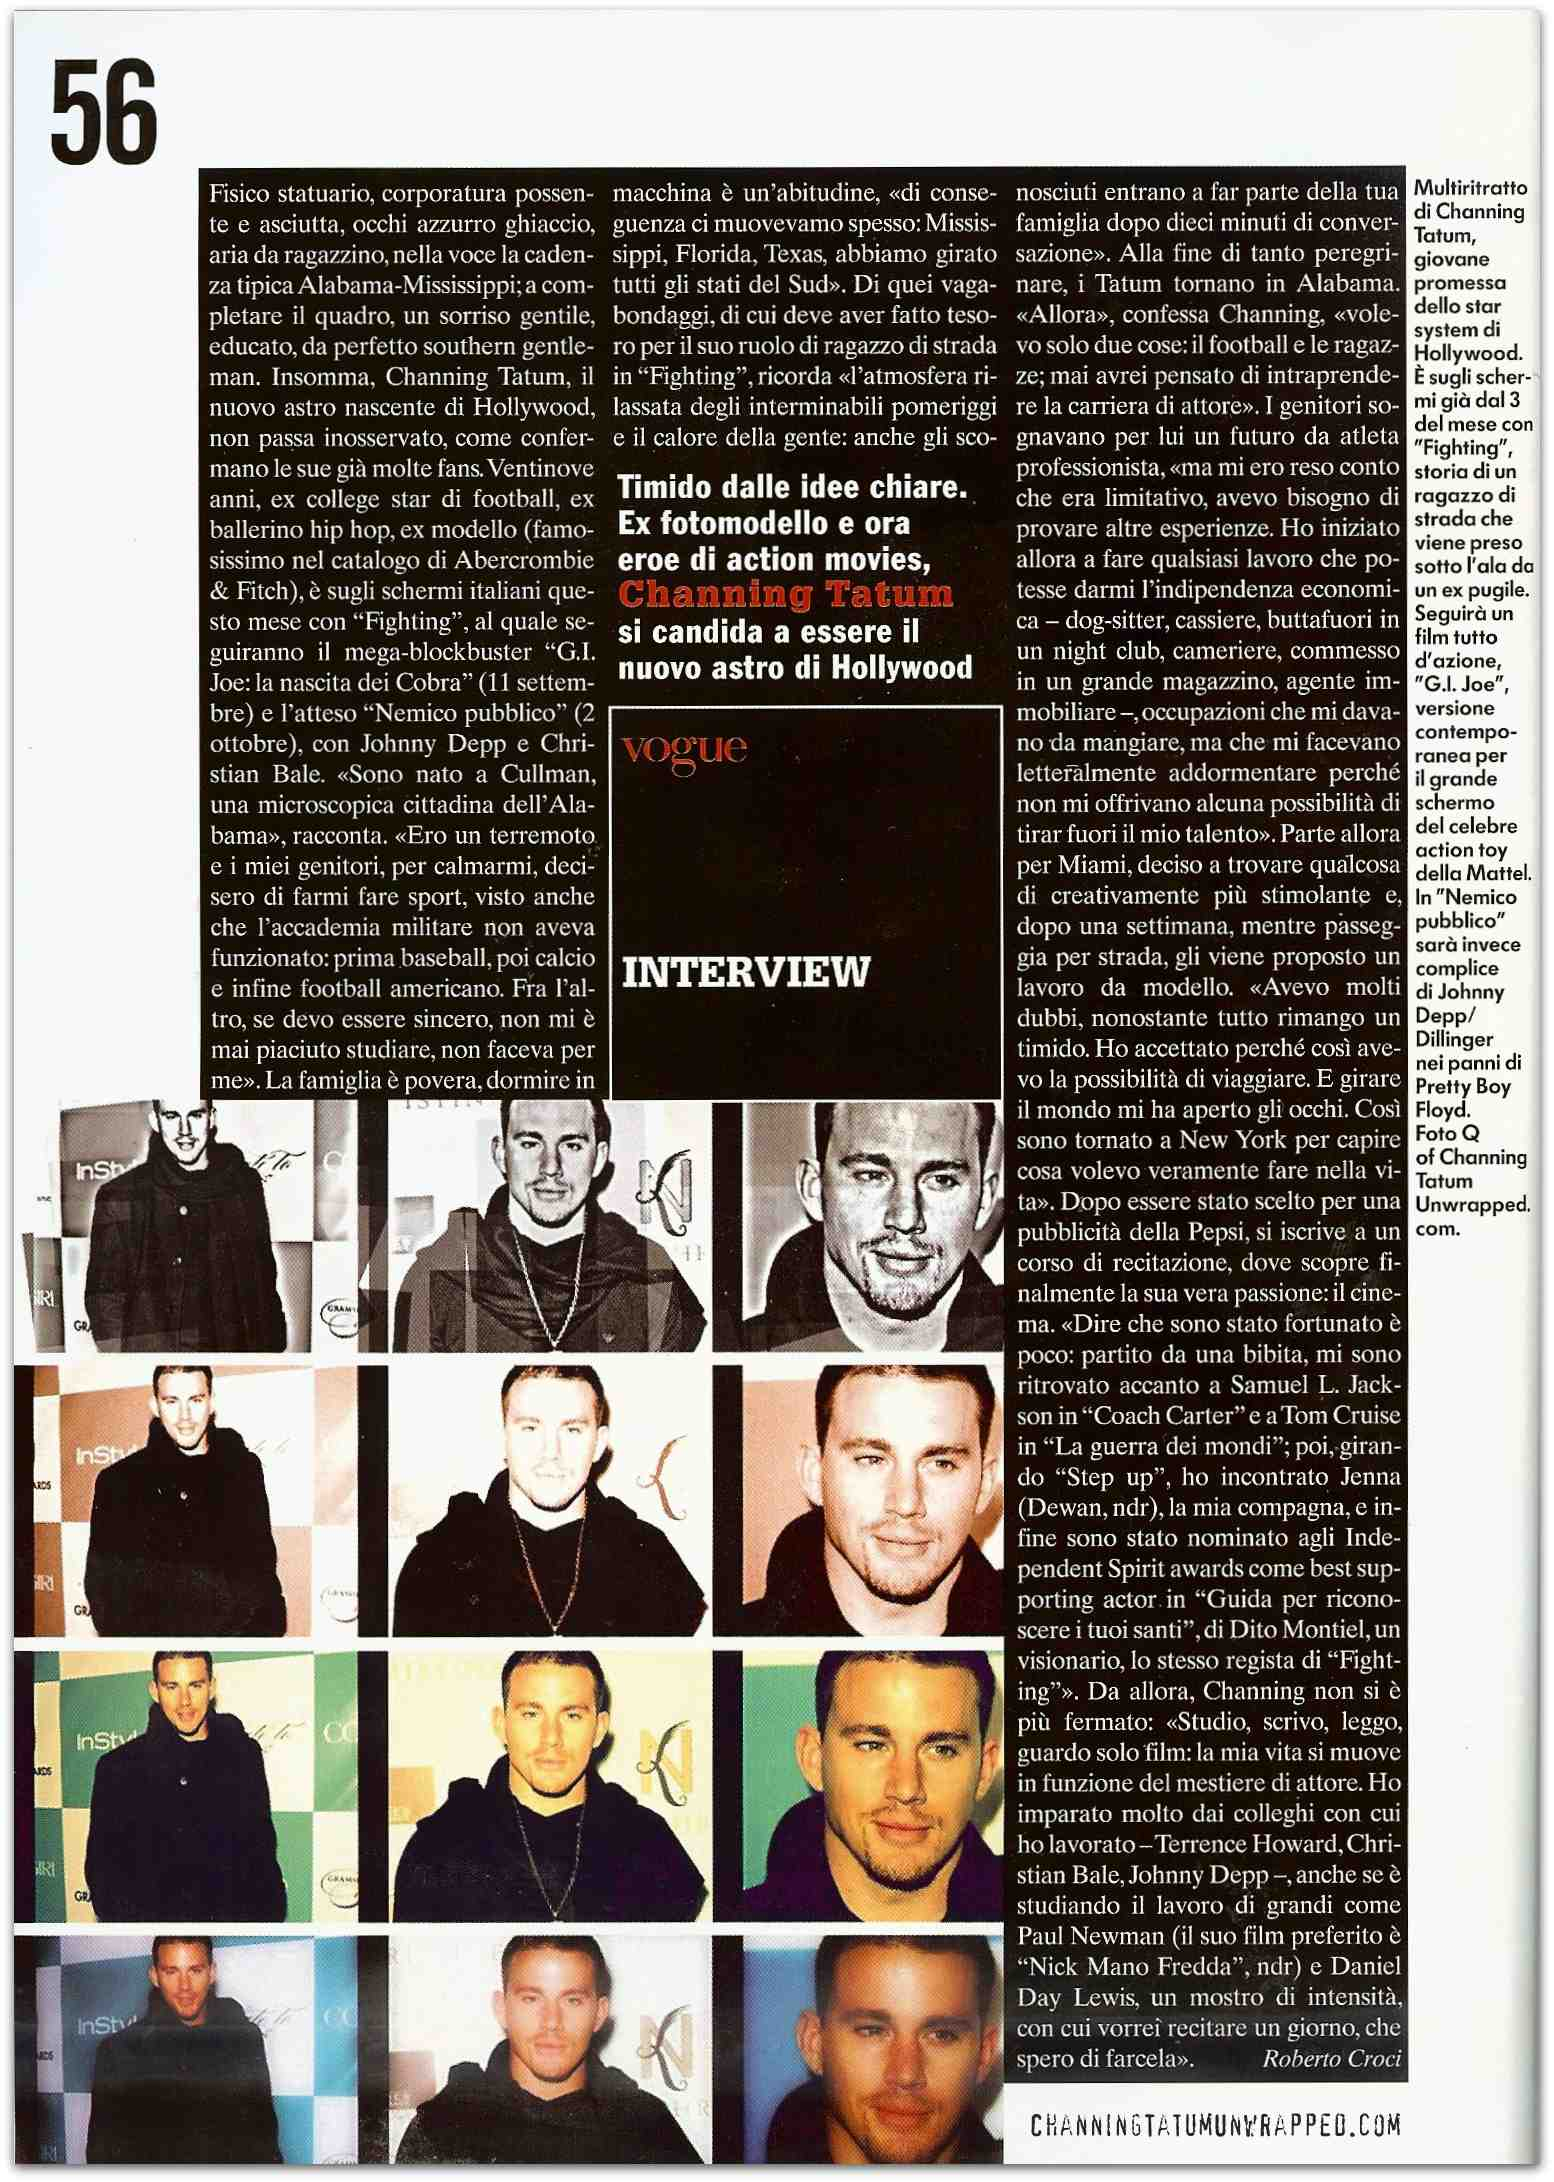 Channing Tatum Featured in July 2009 Vogue Italia (Article)